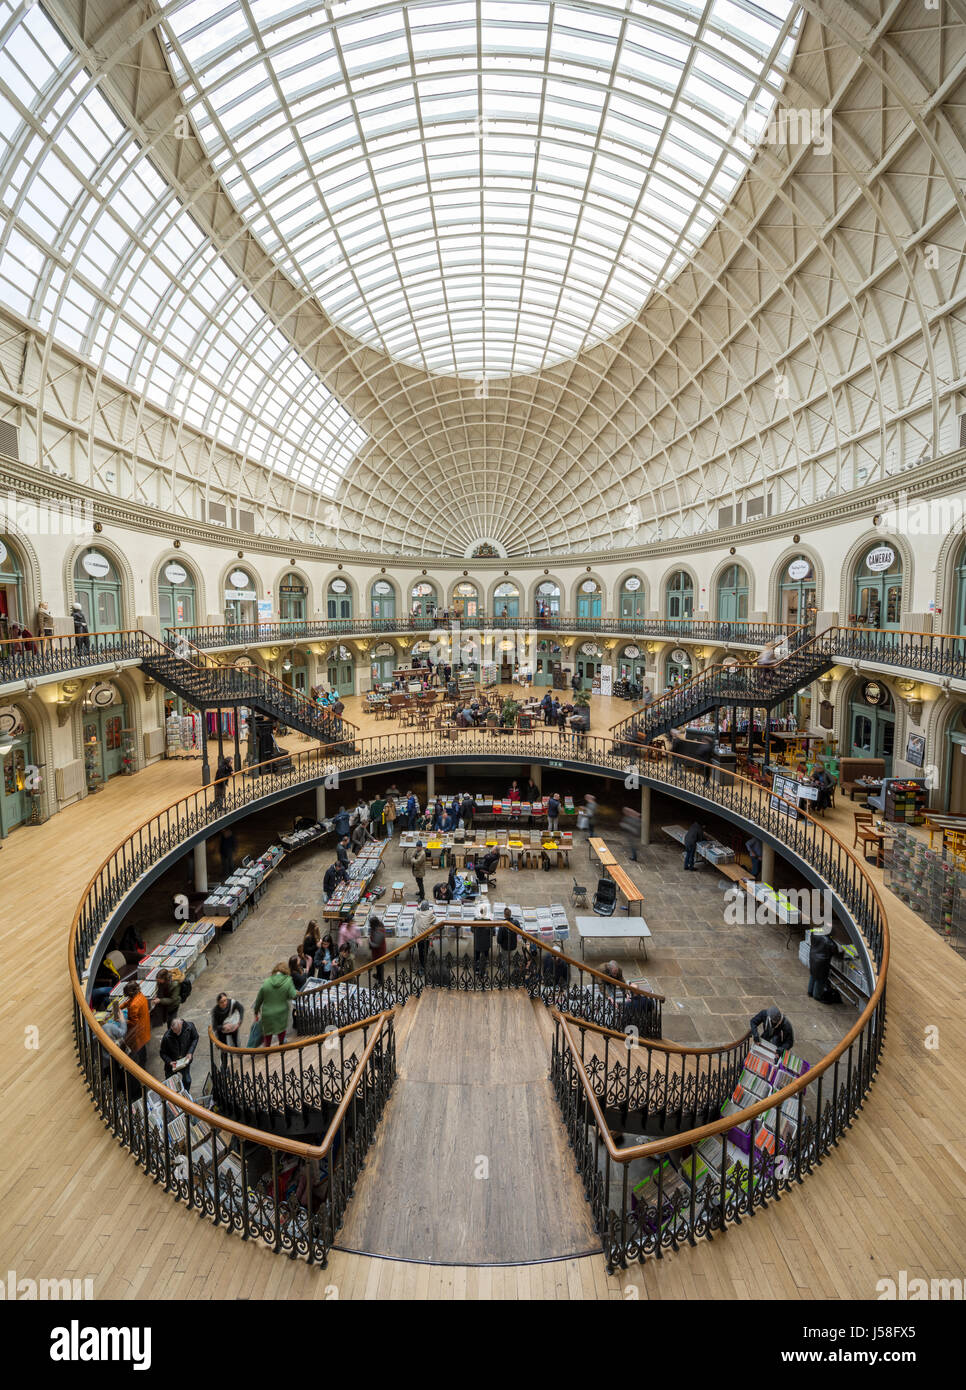 Leeds Corn Exchange - Stock Image